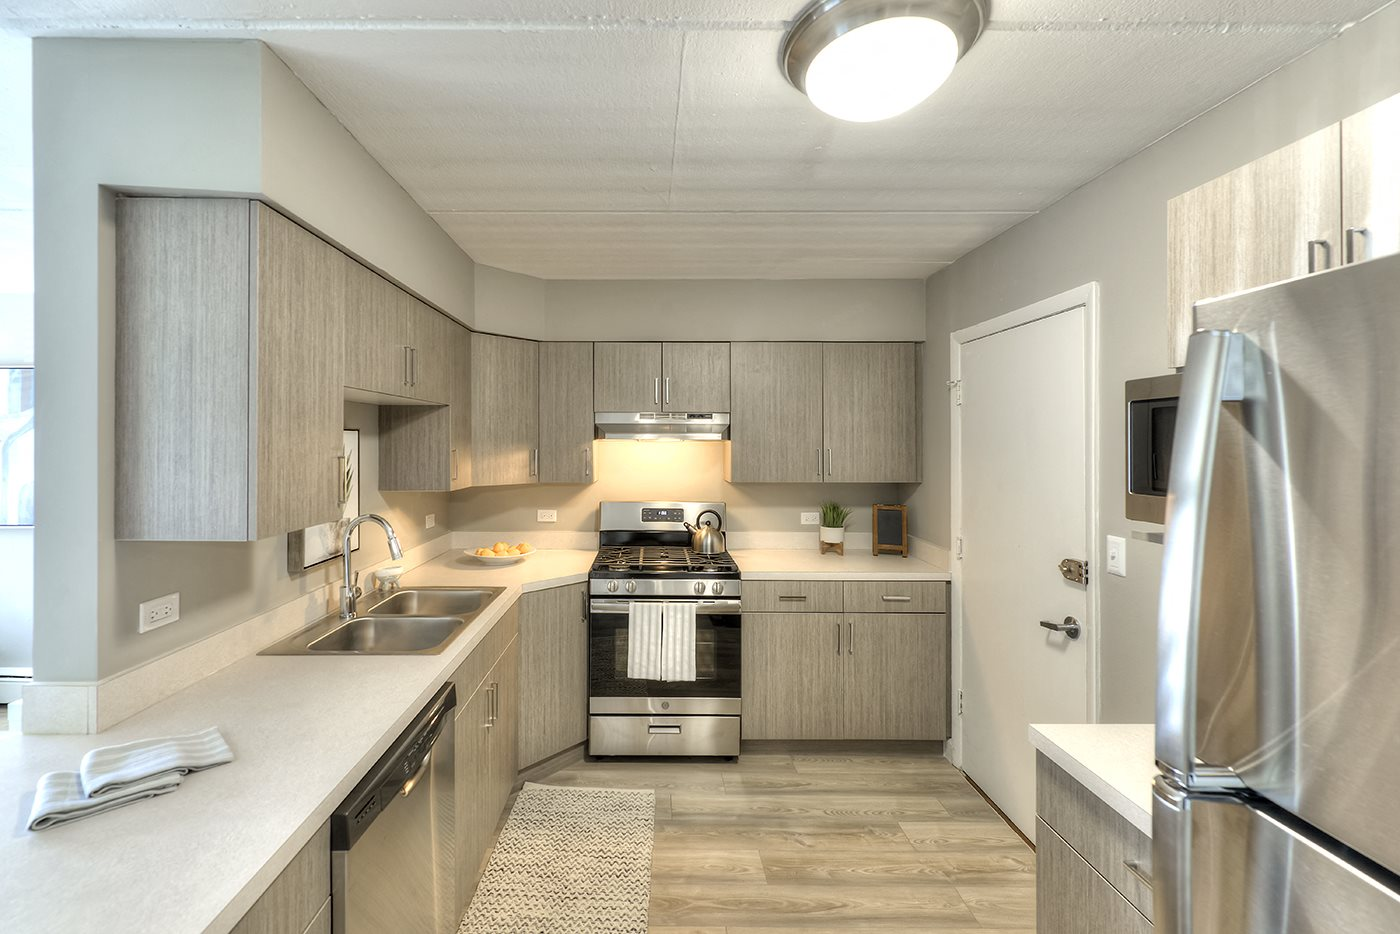 Fully Furnished Kitchen With Stainless Steel Appliances, at Axis at Westmont, Westmont, IL 60559